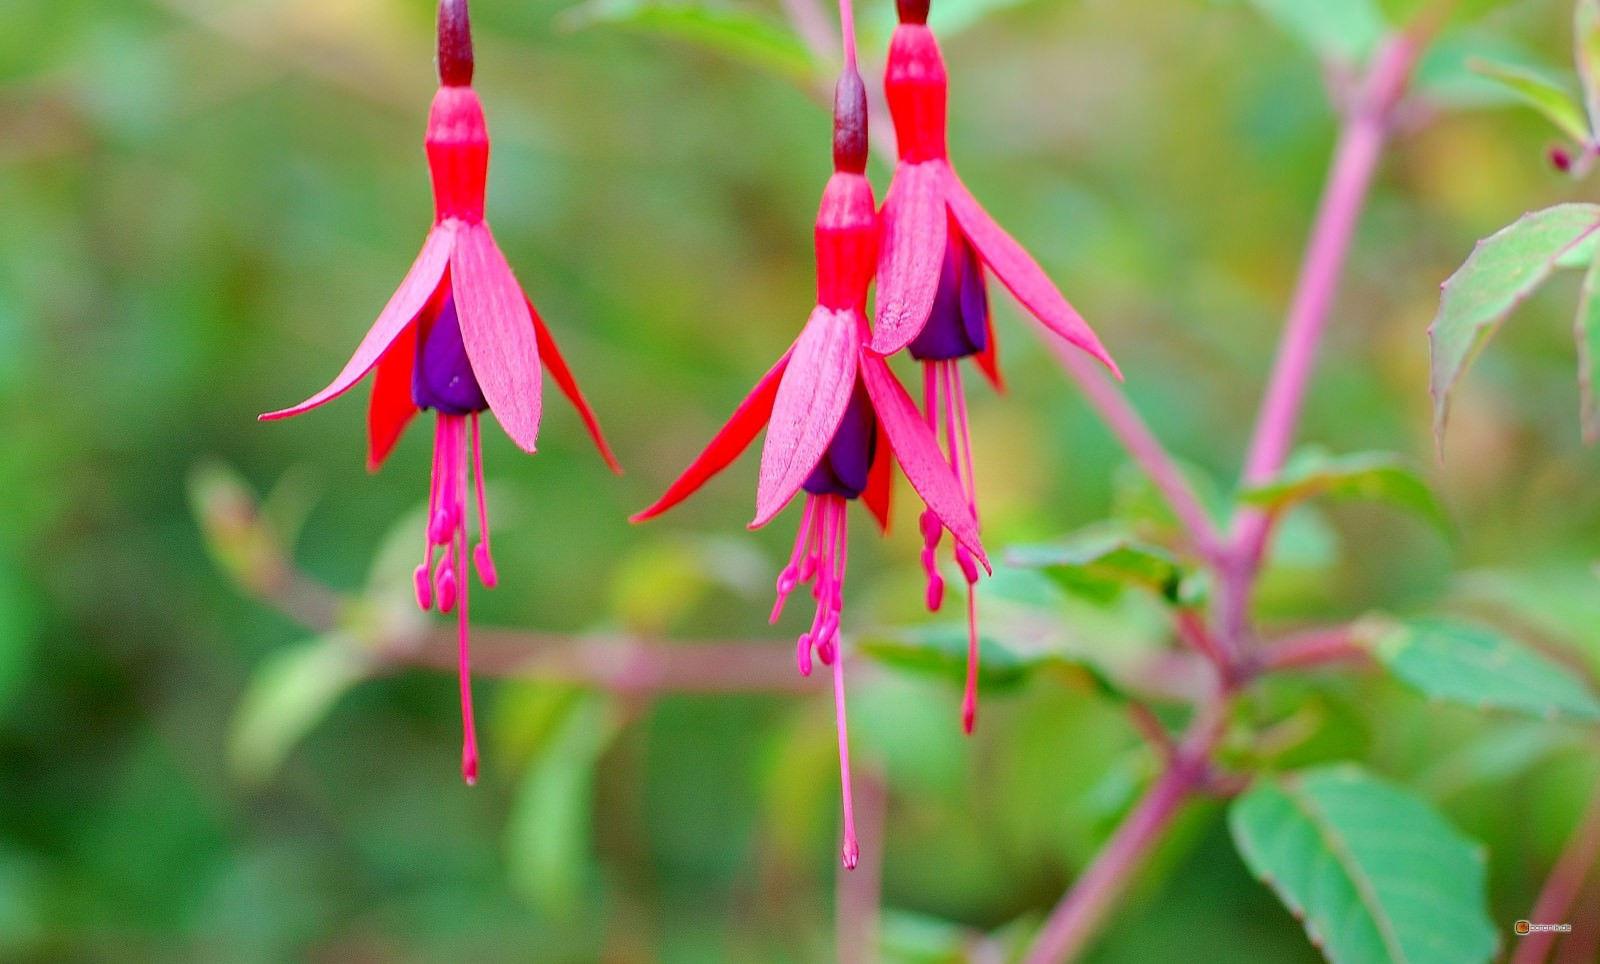 10 Amazing Pictures That Prove The Hummingbird Fuchsia Have One Of